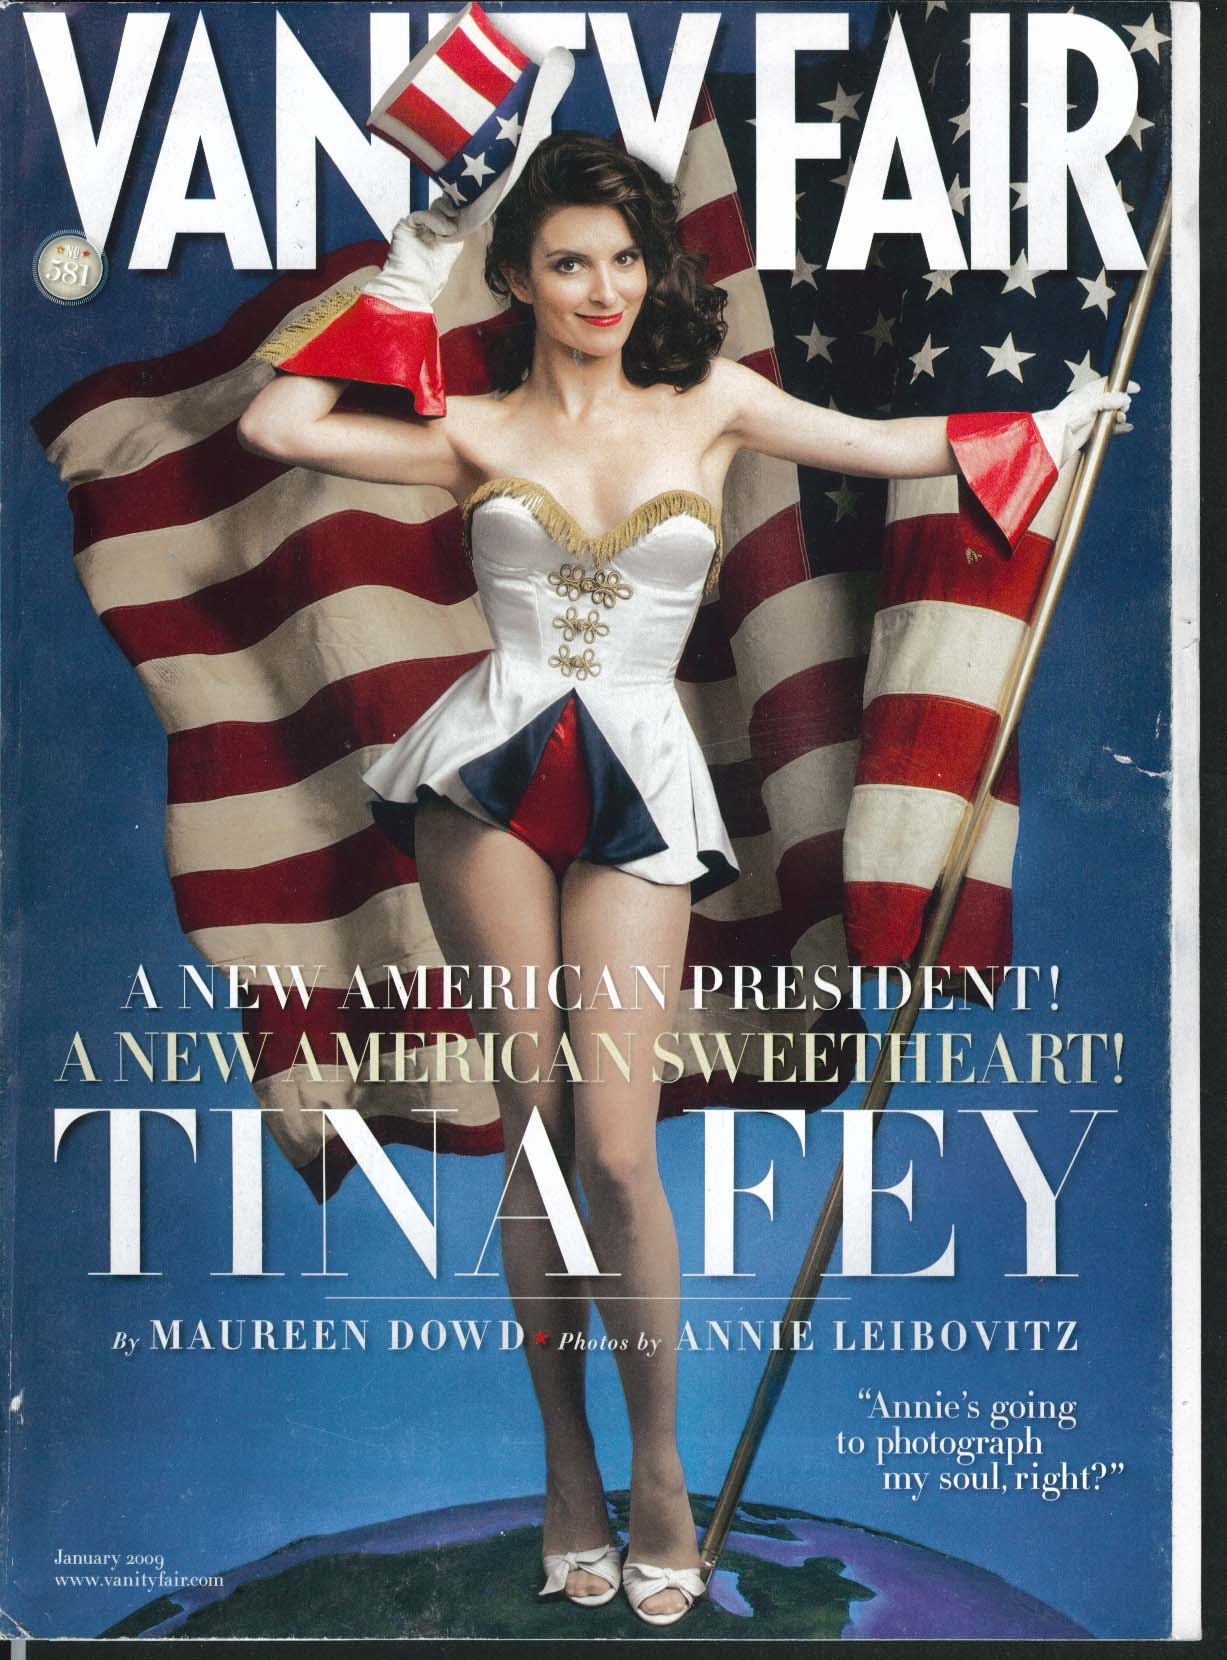 Image for VANITY VAIR Tina Fey Annie Leibovitz Brian McNally Dick Cheney 1 2009